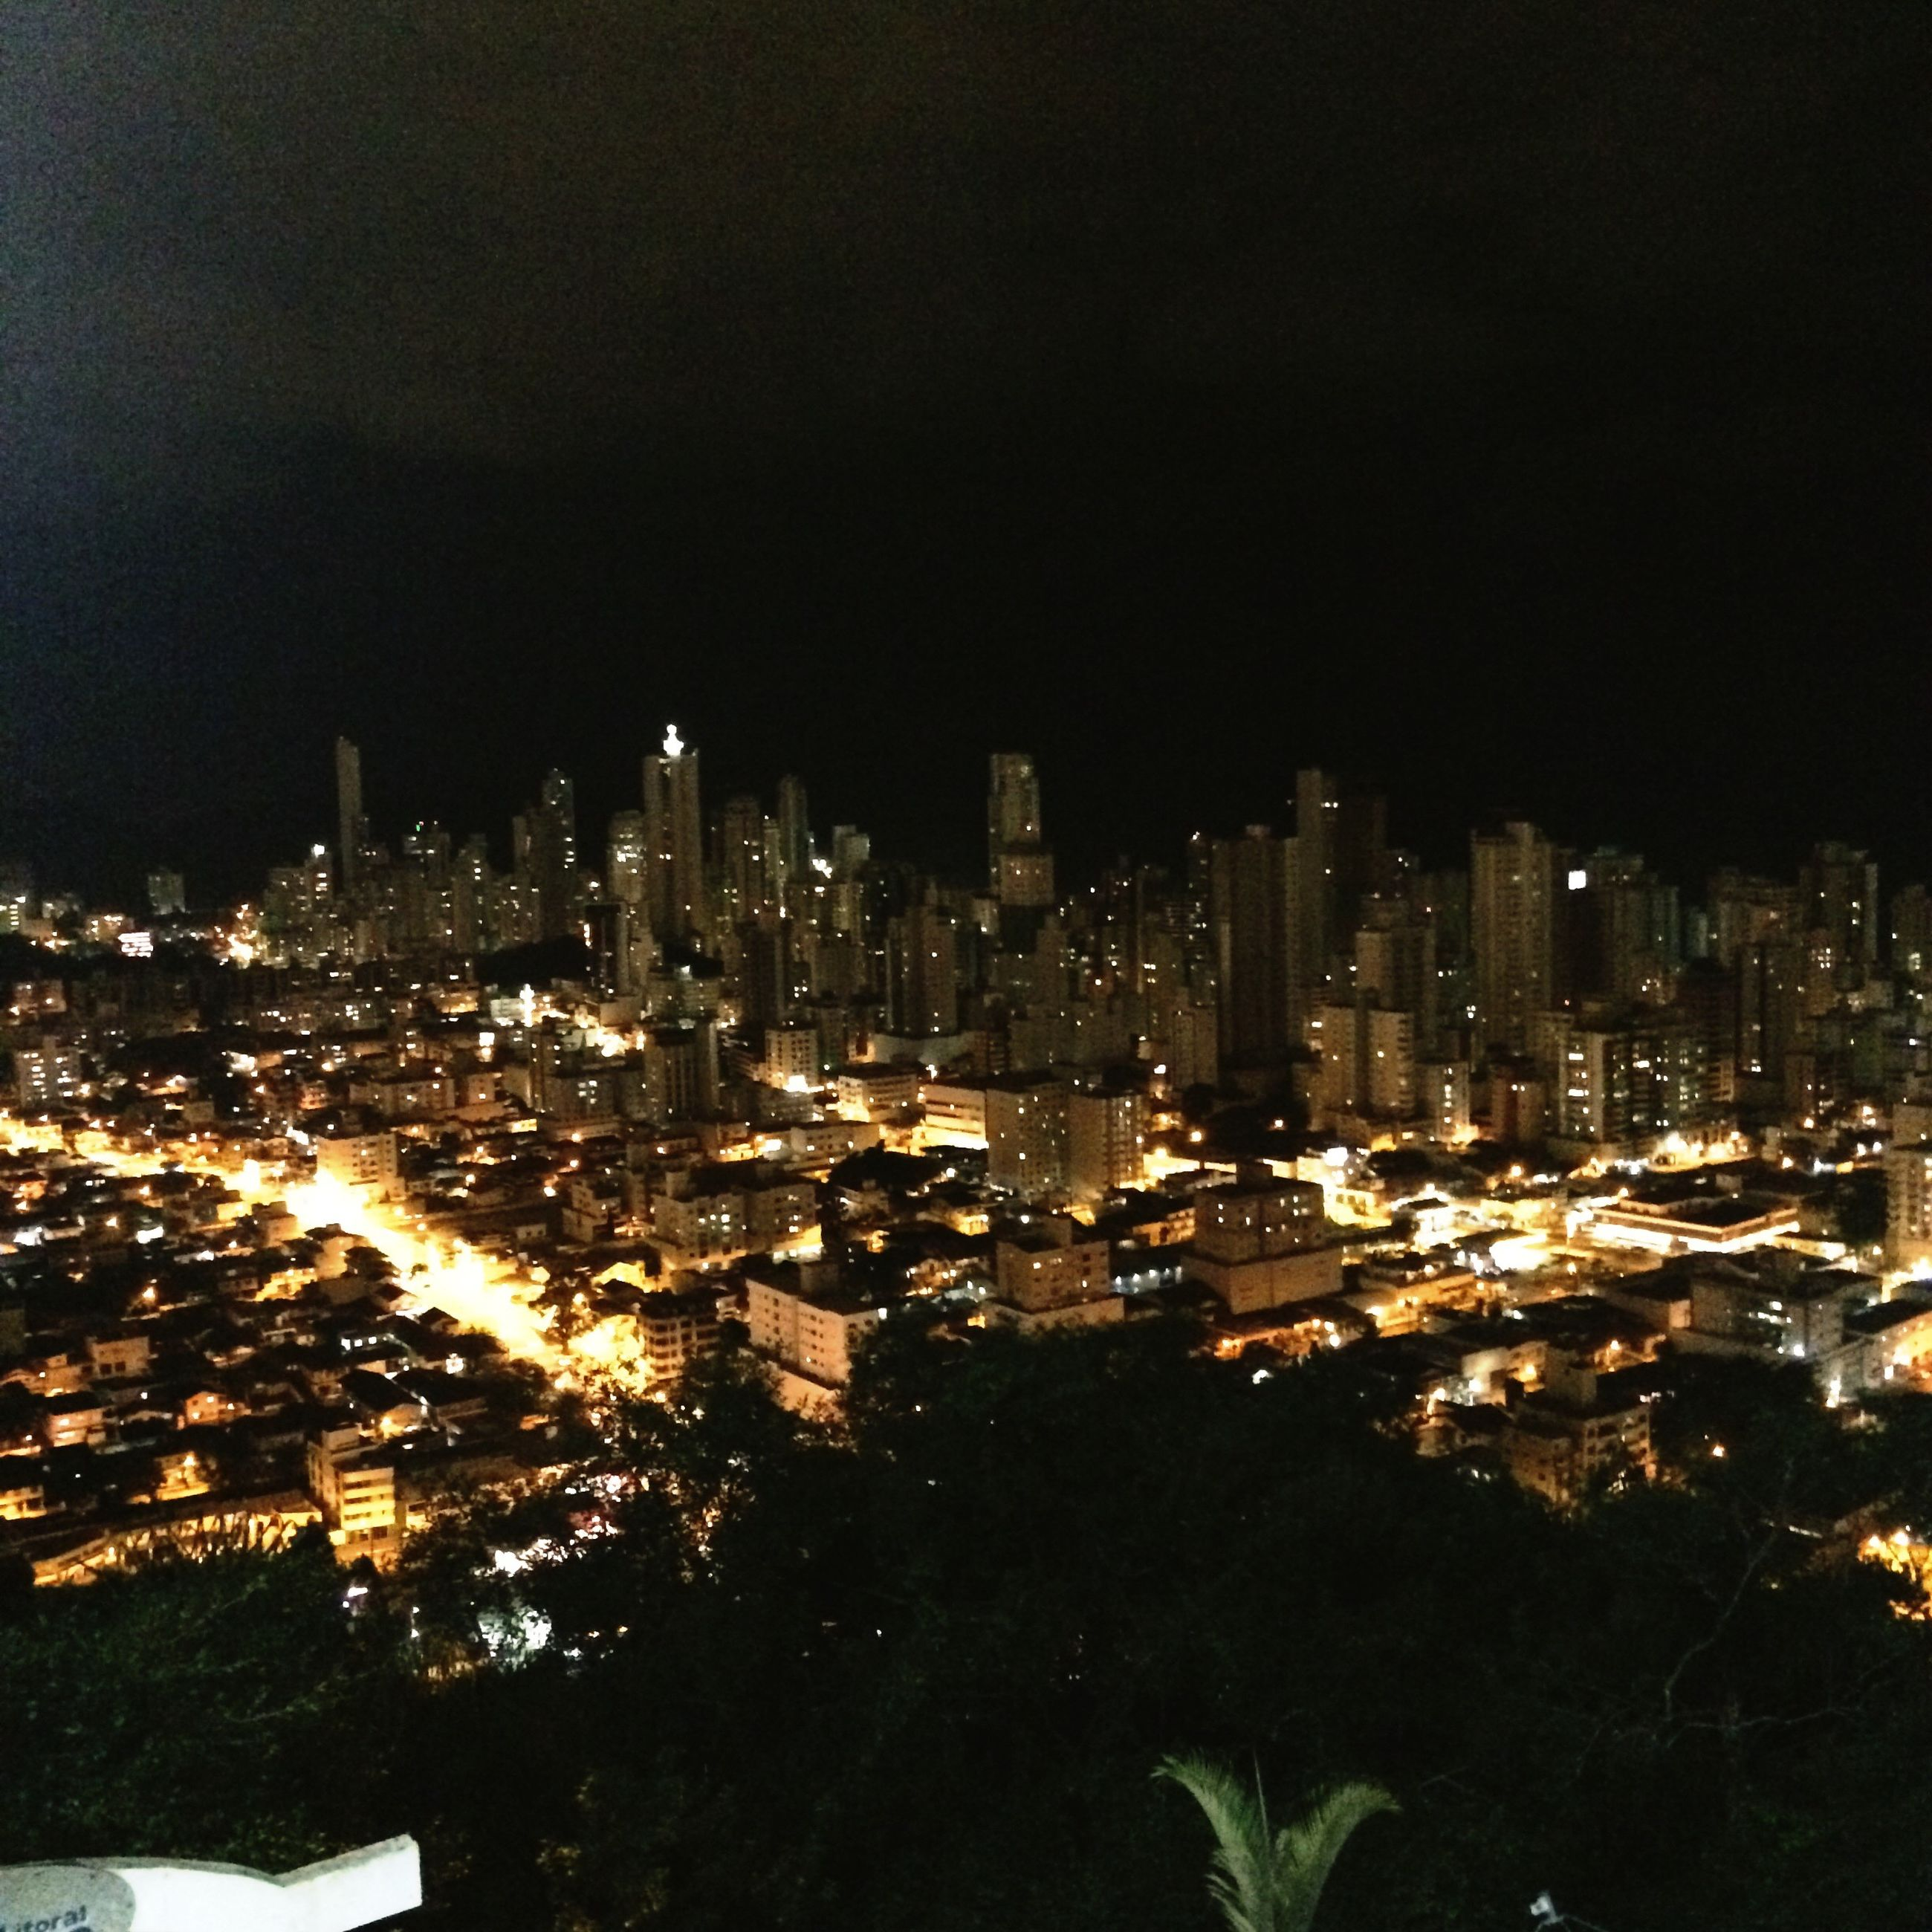 city, architecture, cityscape, built structure, building exterior, night, illuminated, crowded, skyscraper, tall - high, urban skyline, sky, wide, city life, tall, building story, wide shot, growth, modern, aerial view, urban scene, outdoors, financial district, capital cities, no people, development, office building, skyline